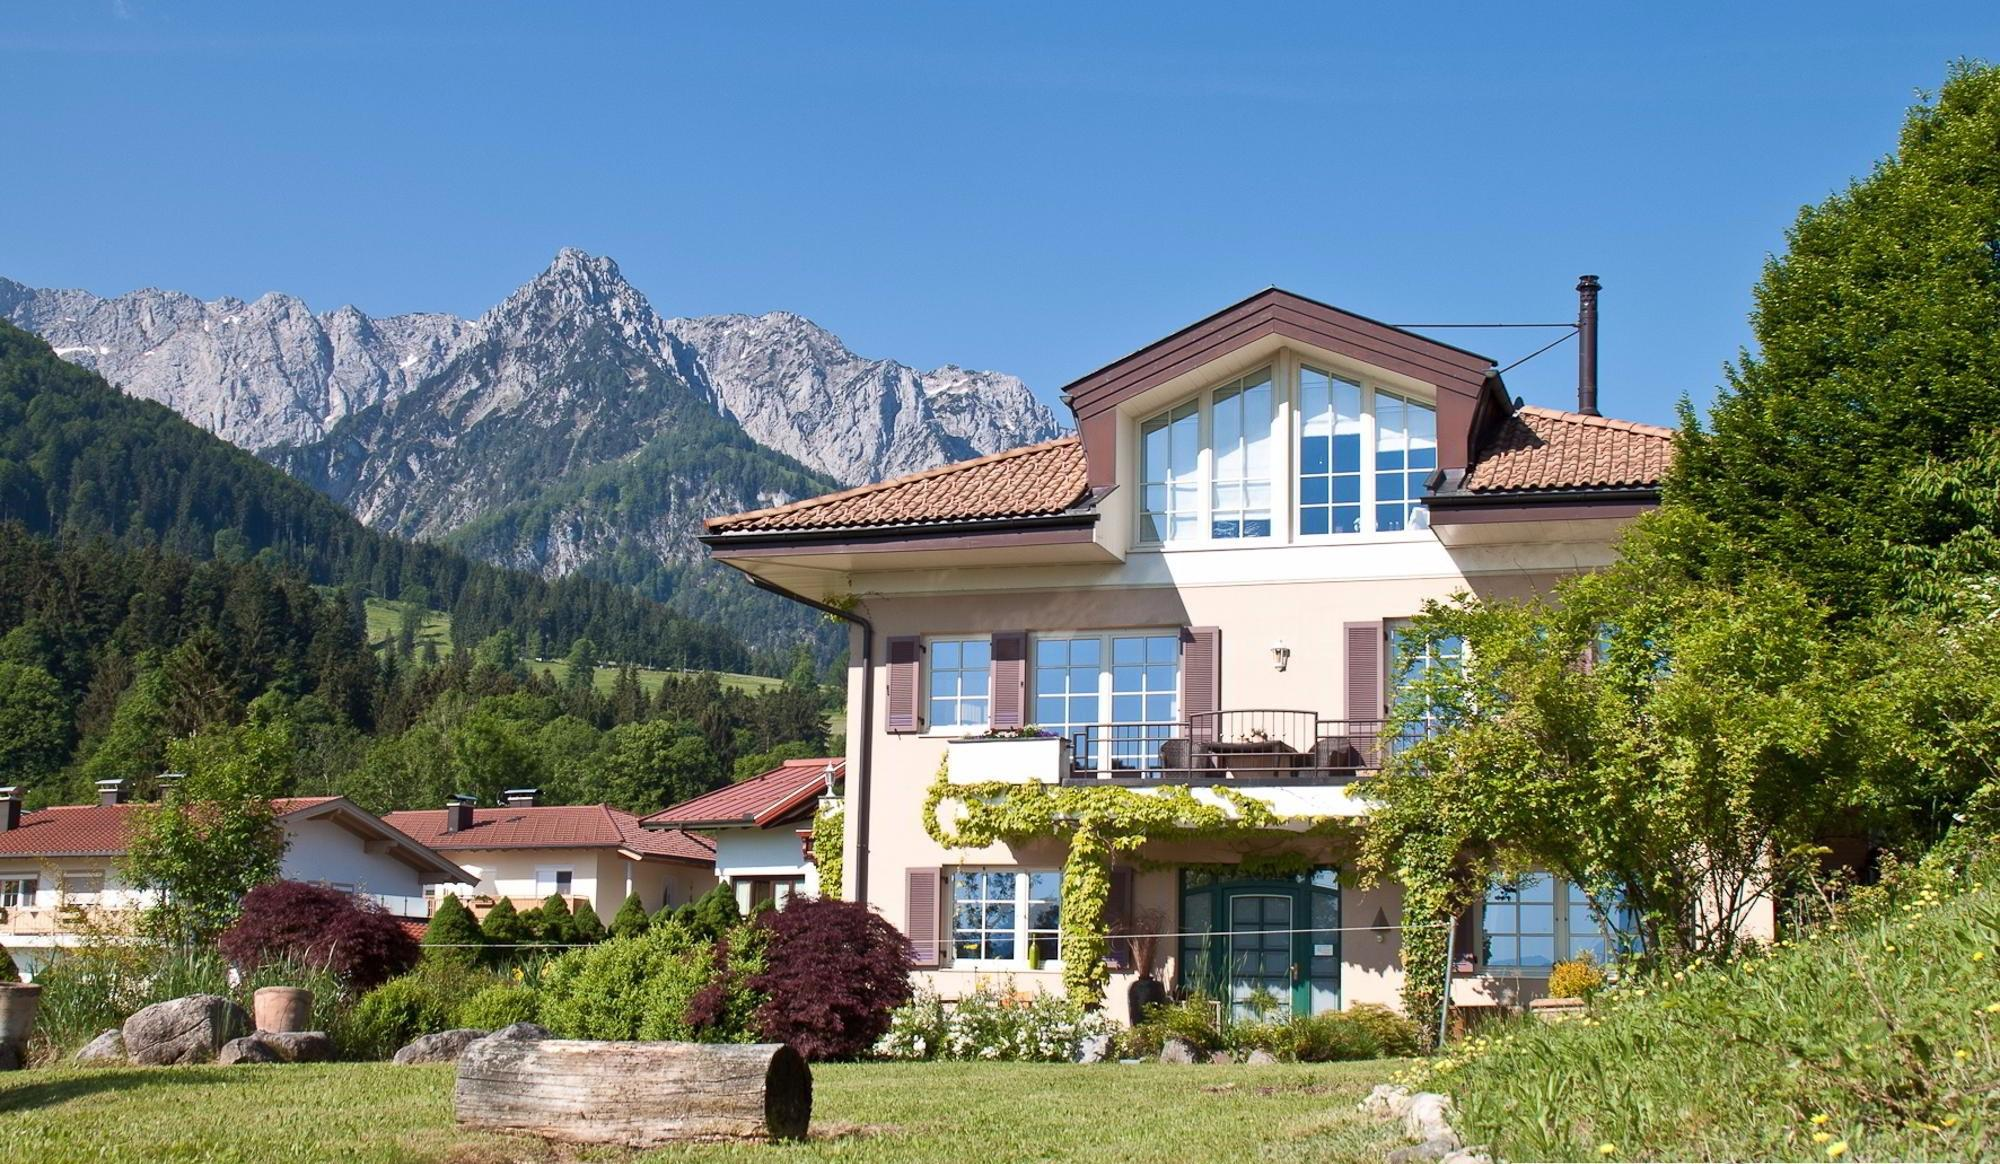 العقارات في النمسا - Comfortable country villa with a lake view in village of Walchsee